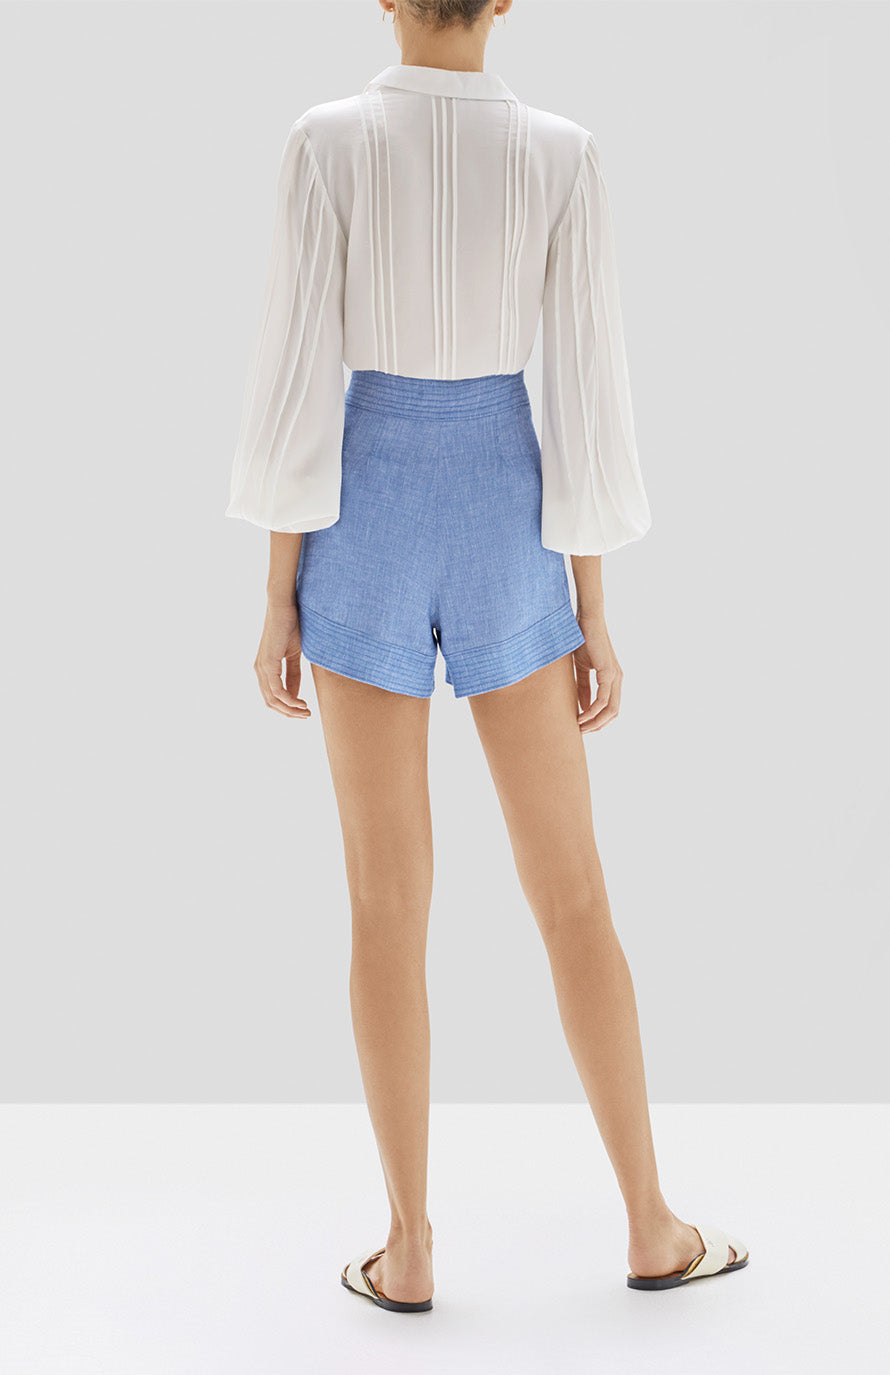 Alexis Lorne Top in White and Garwen Short in Light Blue from Pre Spring 2020 Collection. - Rear View